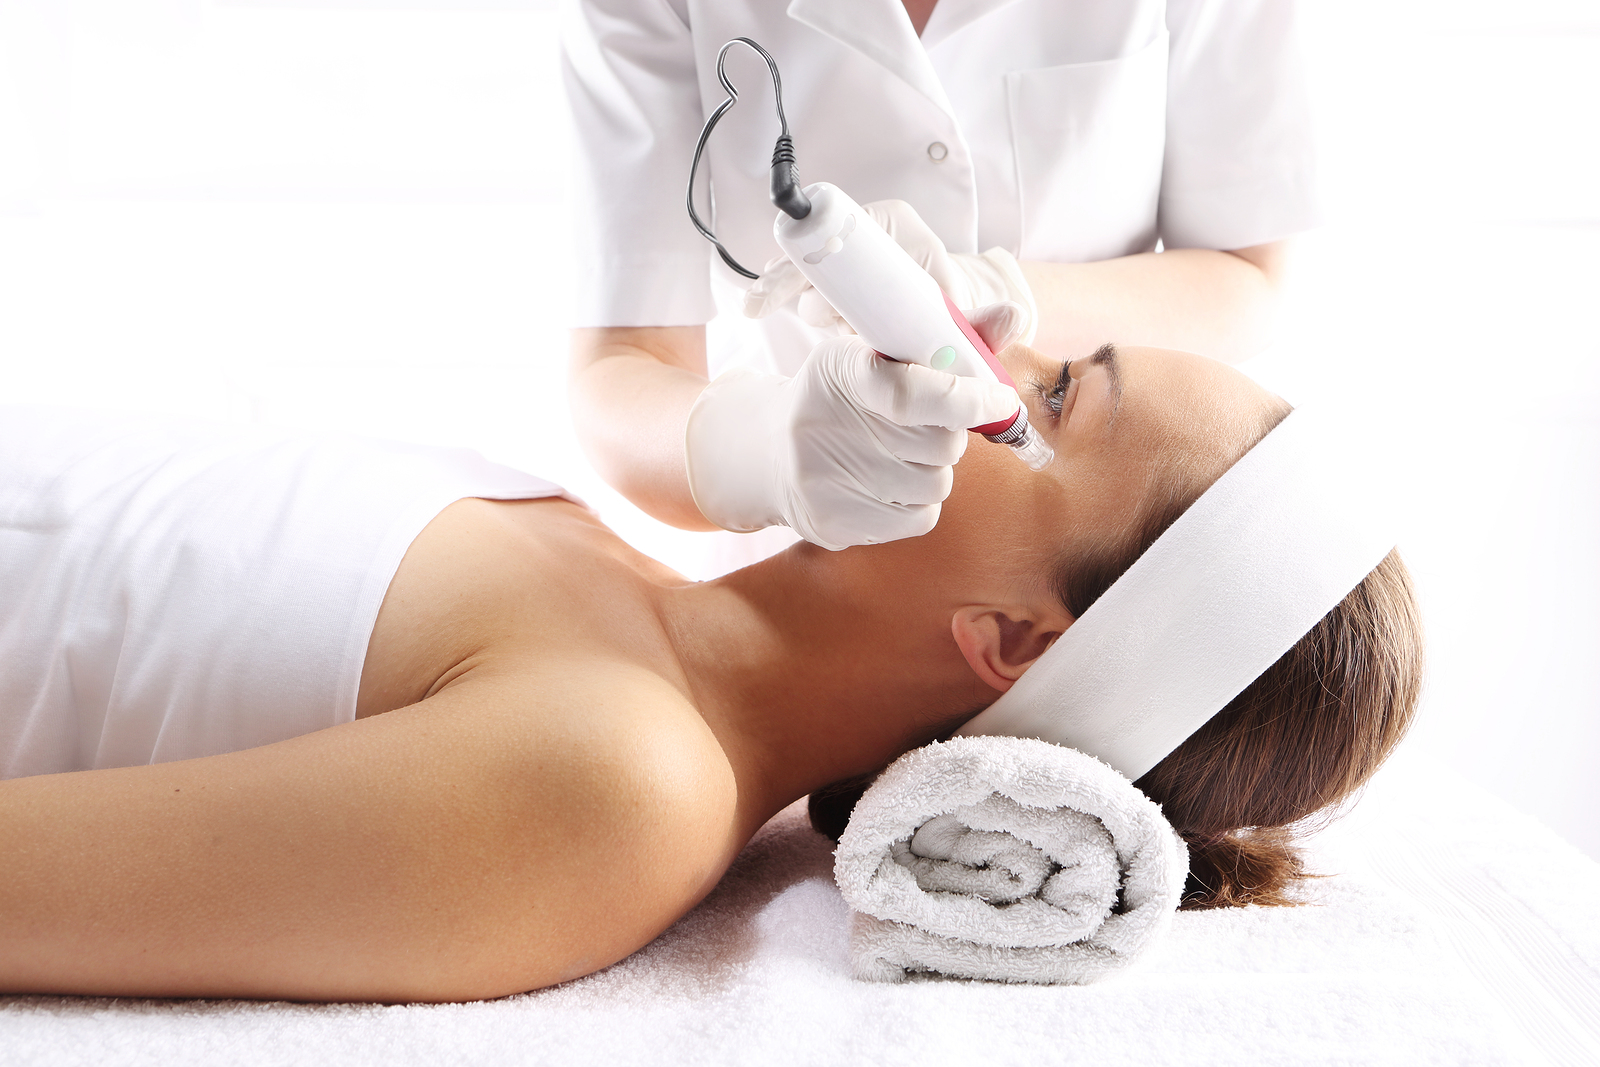 NANO Micro-Needling is the Way of the Future at Mint Salon